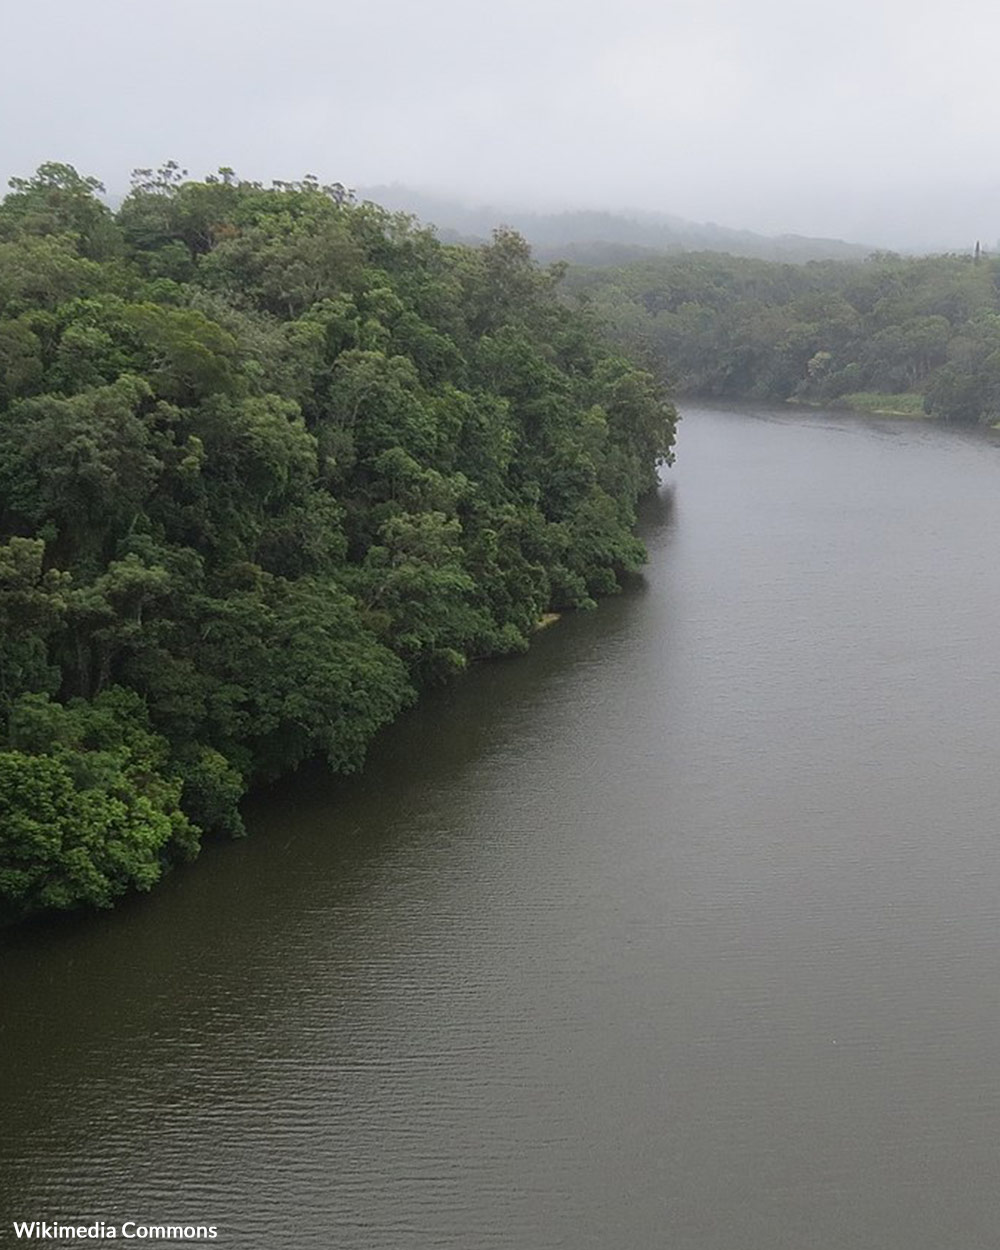 Aboriginal tribes have made their homes in this rainforest for tens of thousands of years.